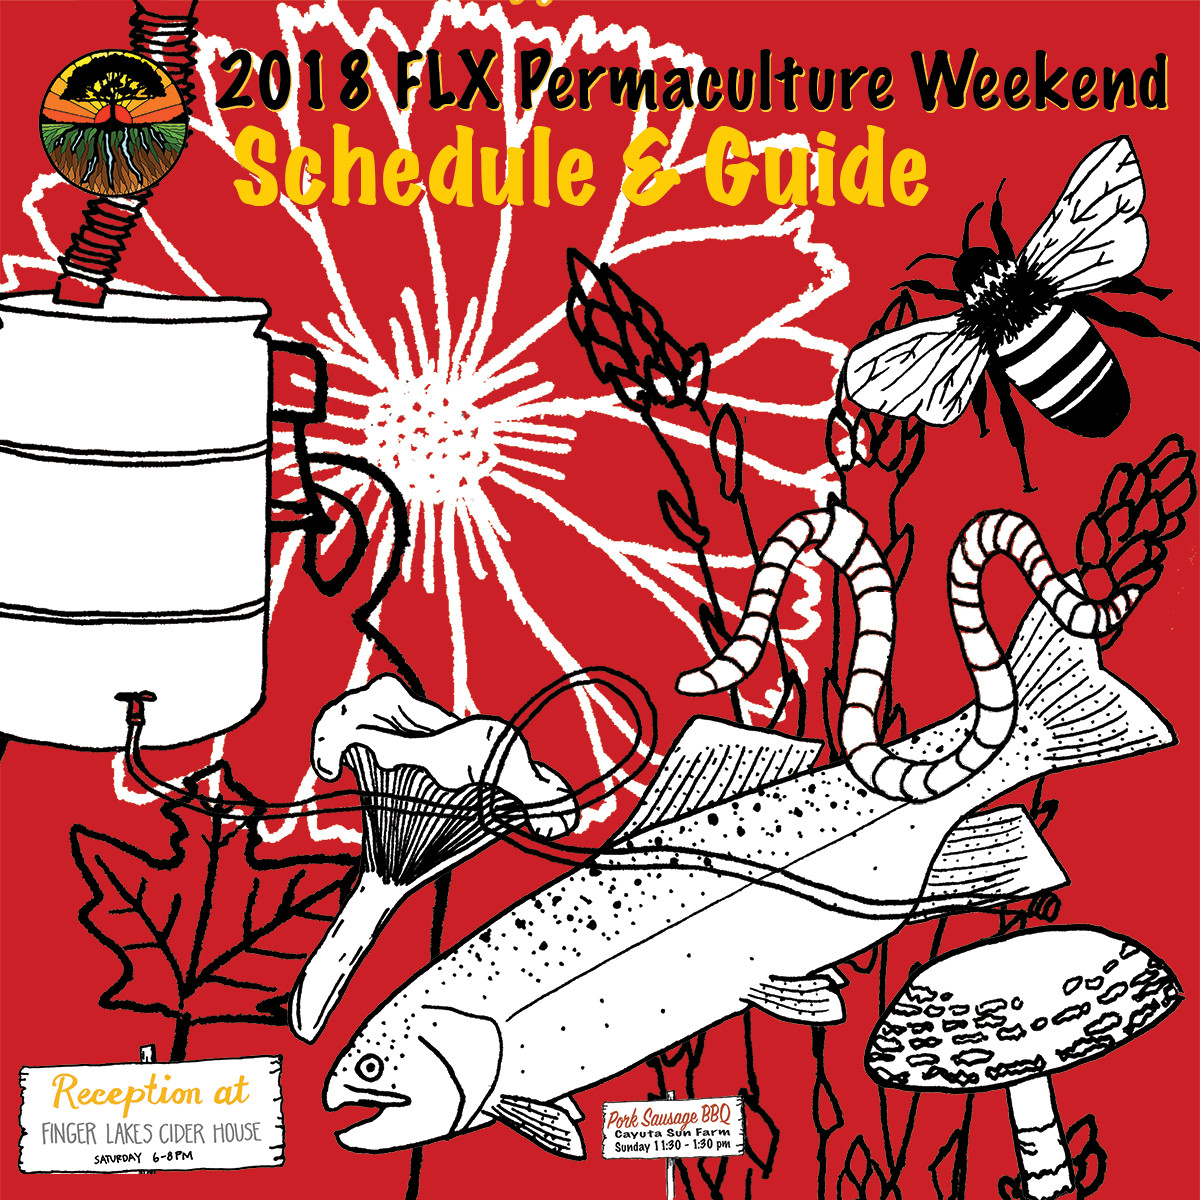 FLX Permaculture Weekend Schedule Released